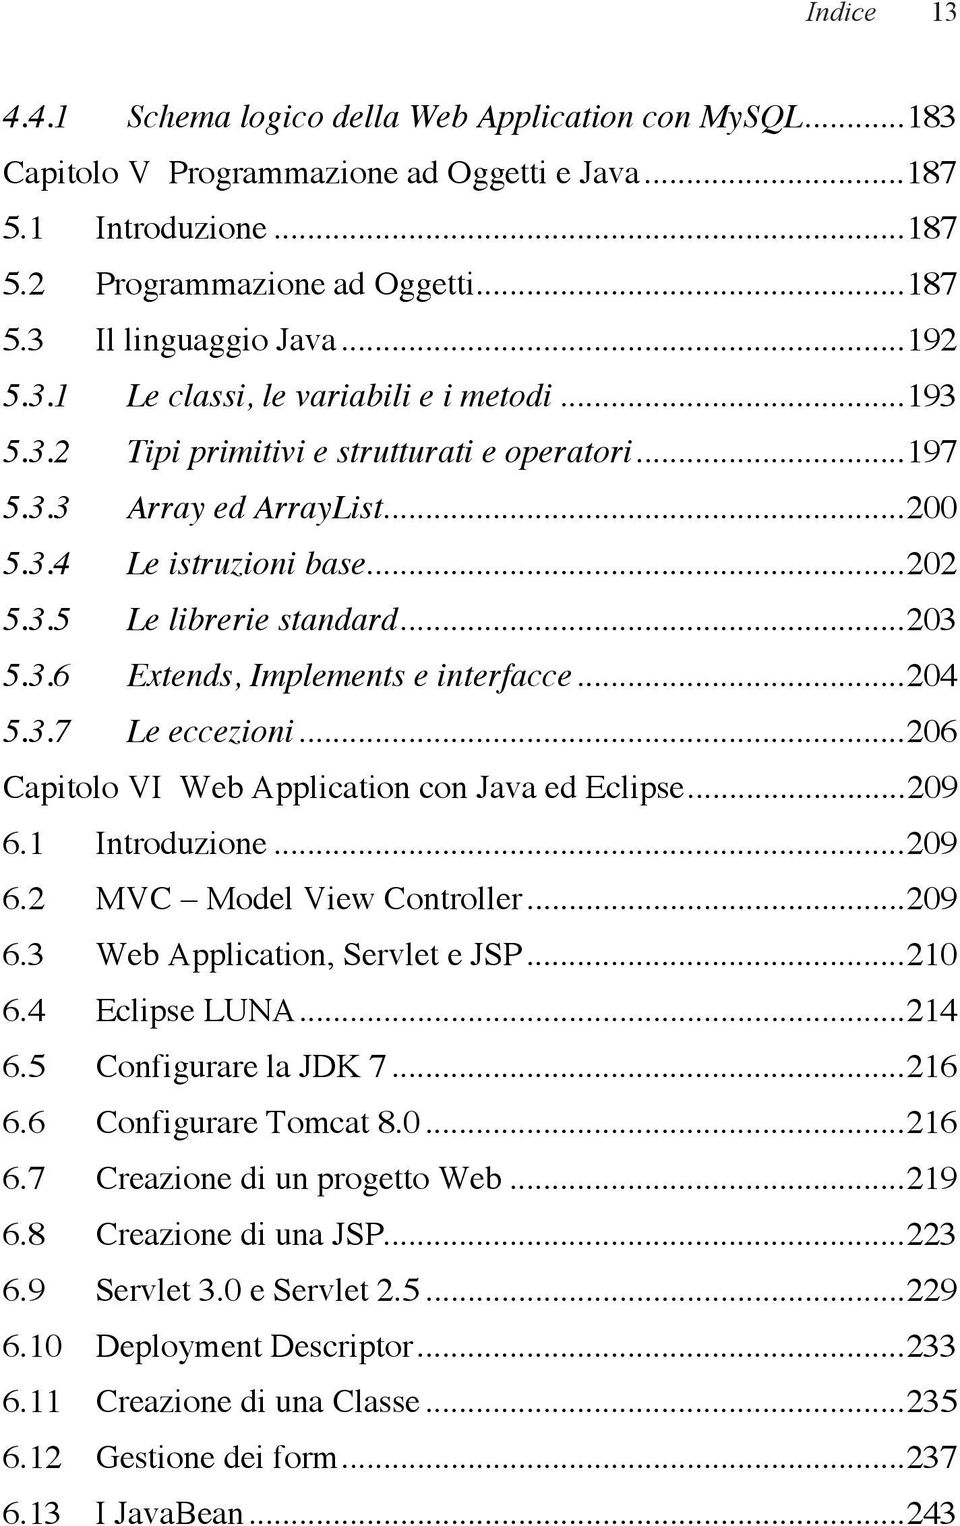 .. 203 5.3.6 Extends, Implements e interfacce... 204 5.3.7 Le eccezioni... 206 Capitolo VI Web Application con Java ed Eclipse... 209 6.1 Introduzione... 209 6.2 MVC Model View Controller... 209 6.3 Web Application, Servlet e JSP.